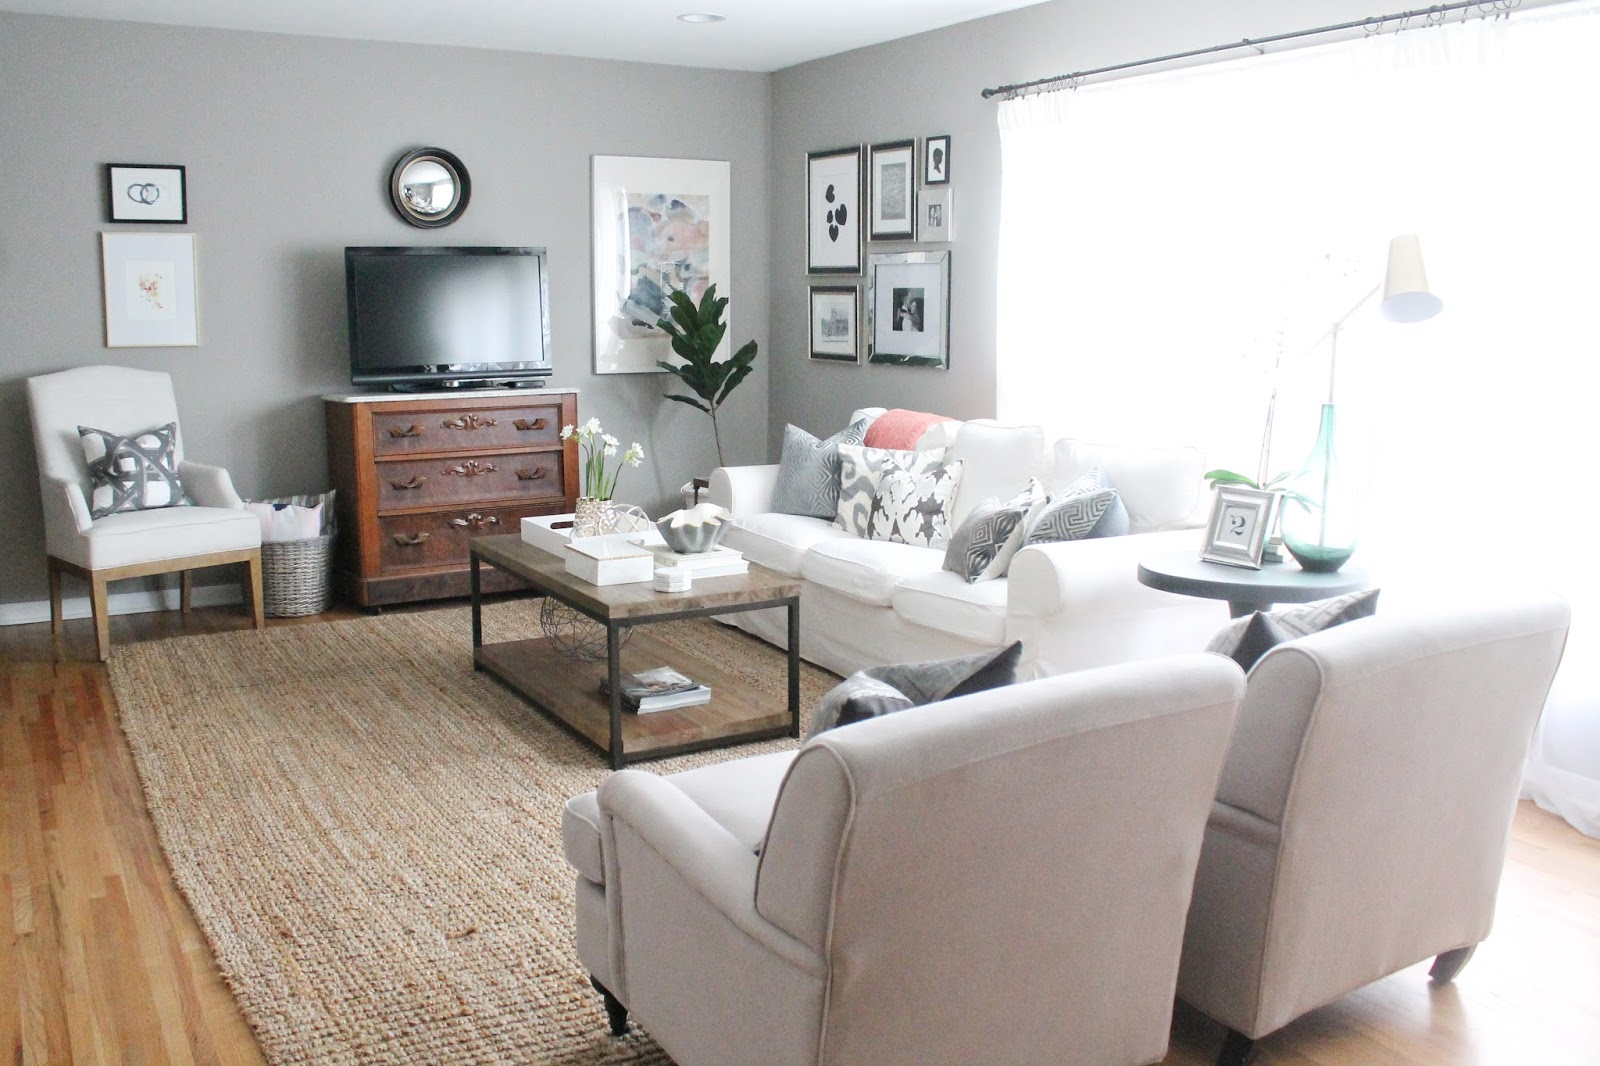 12th and White ModernMeetsTraditional Living Room Refresh